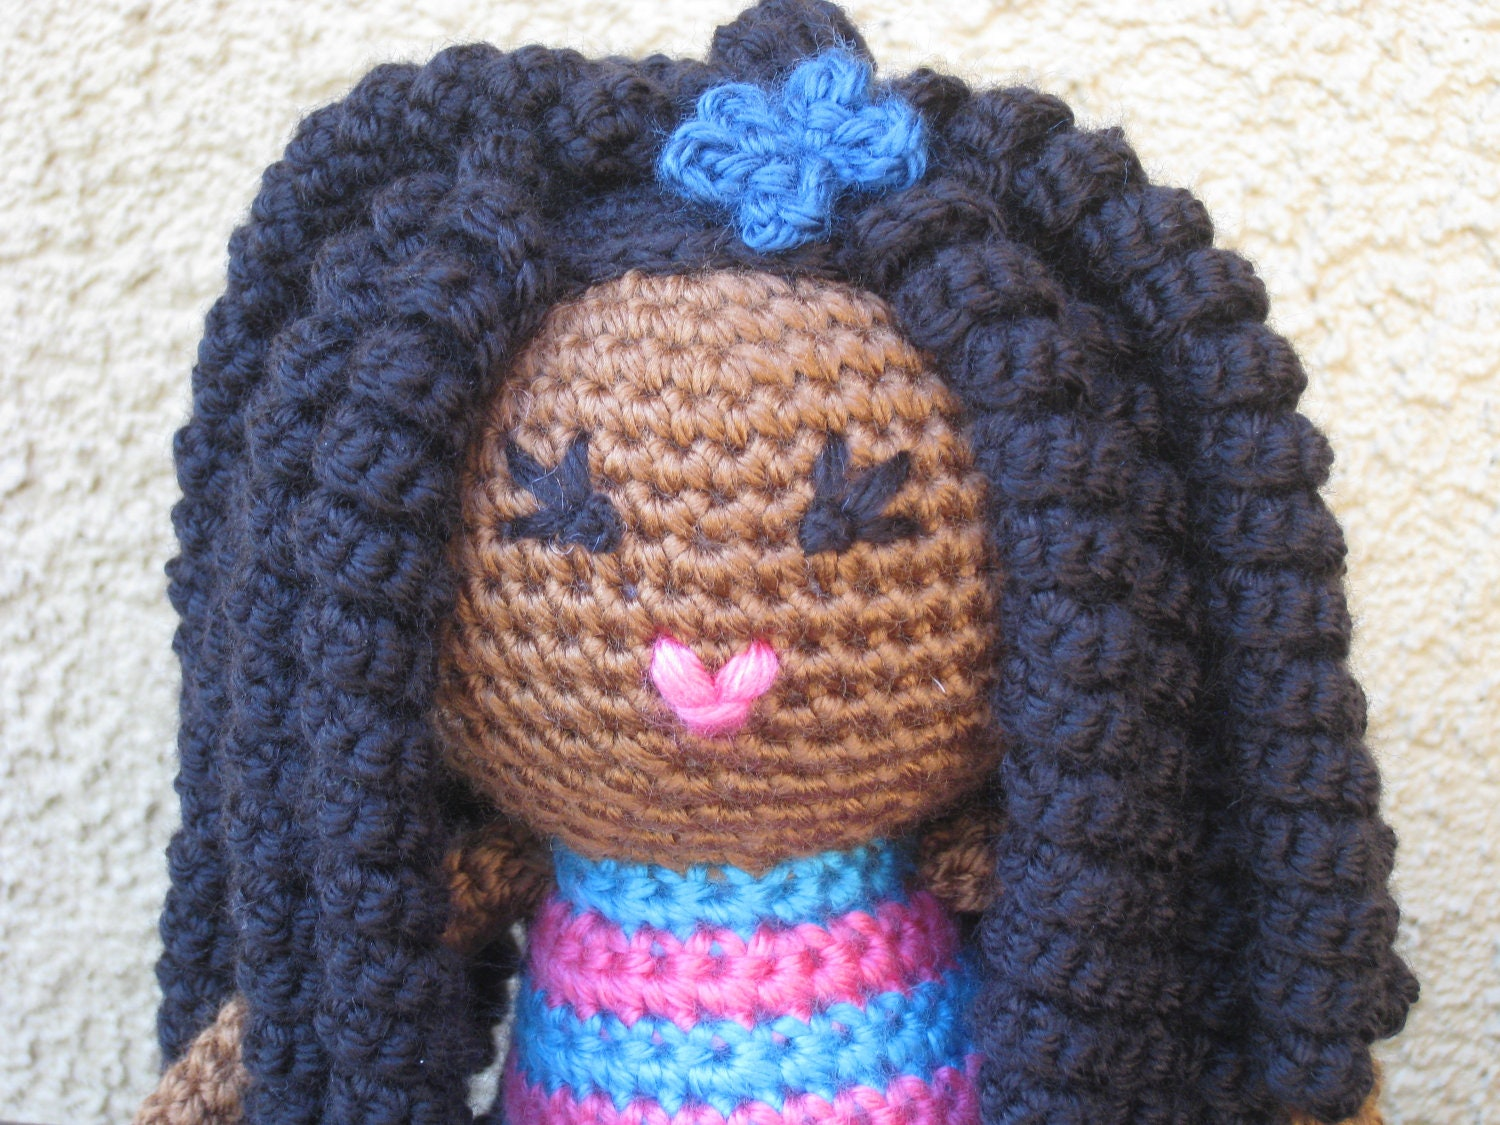 Crochet Hair For Dolls : CROCHET PATTERN African Curly Haired Doll Plush by LeenGreenBean